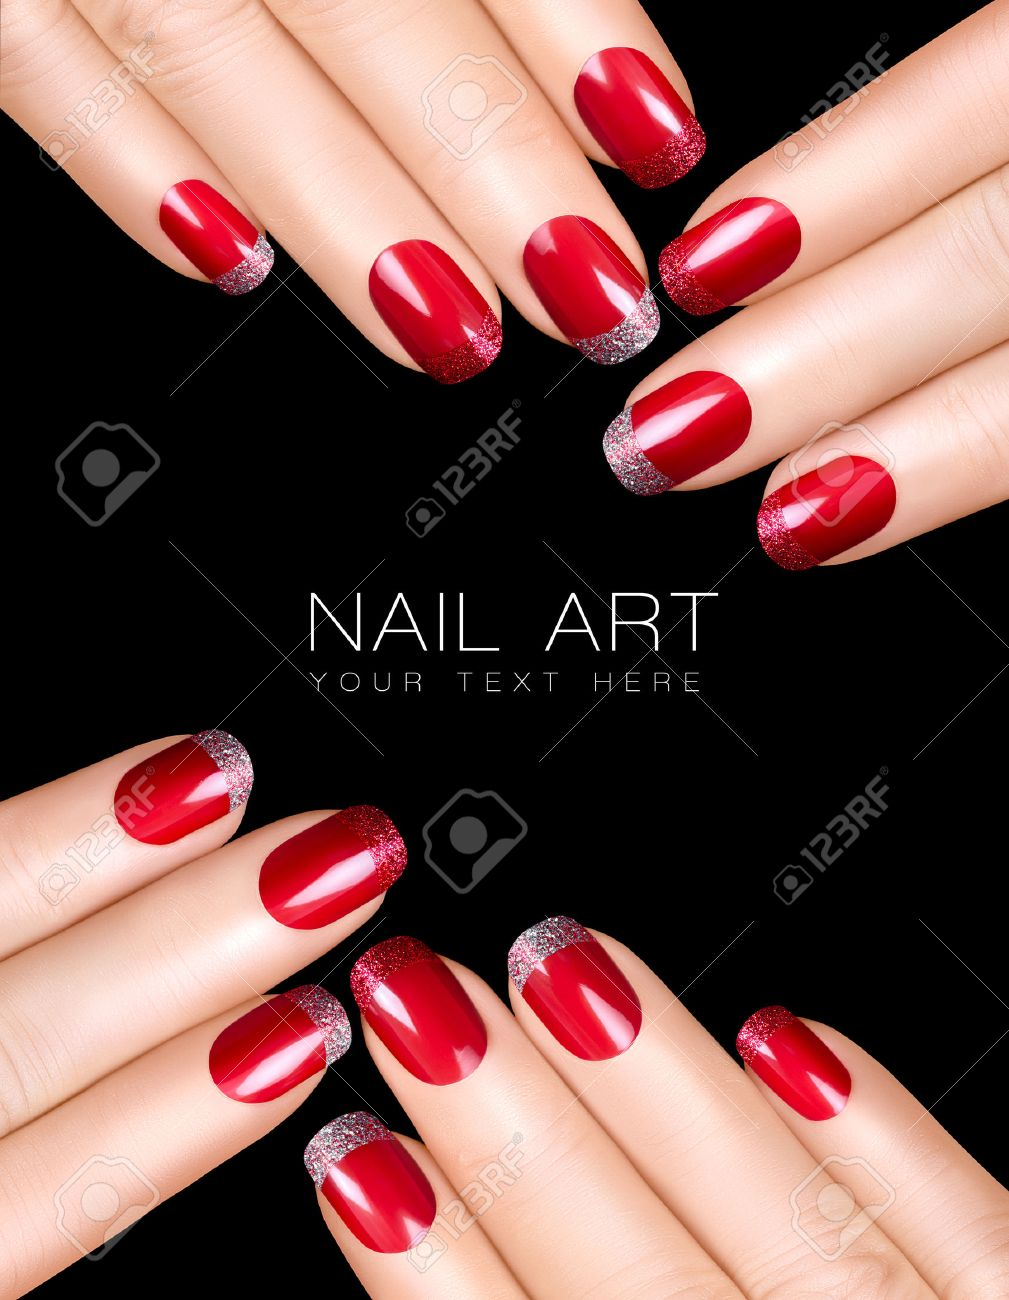 Holiday Nail Art Luxury Nail Polish With Glitter French Manicure